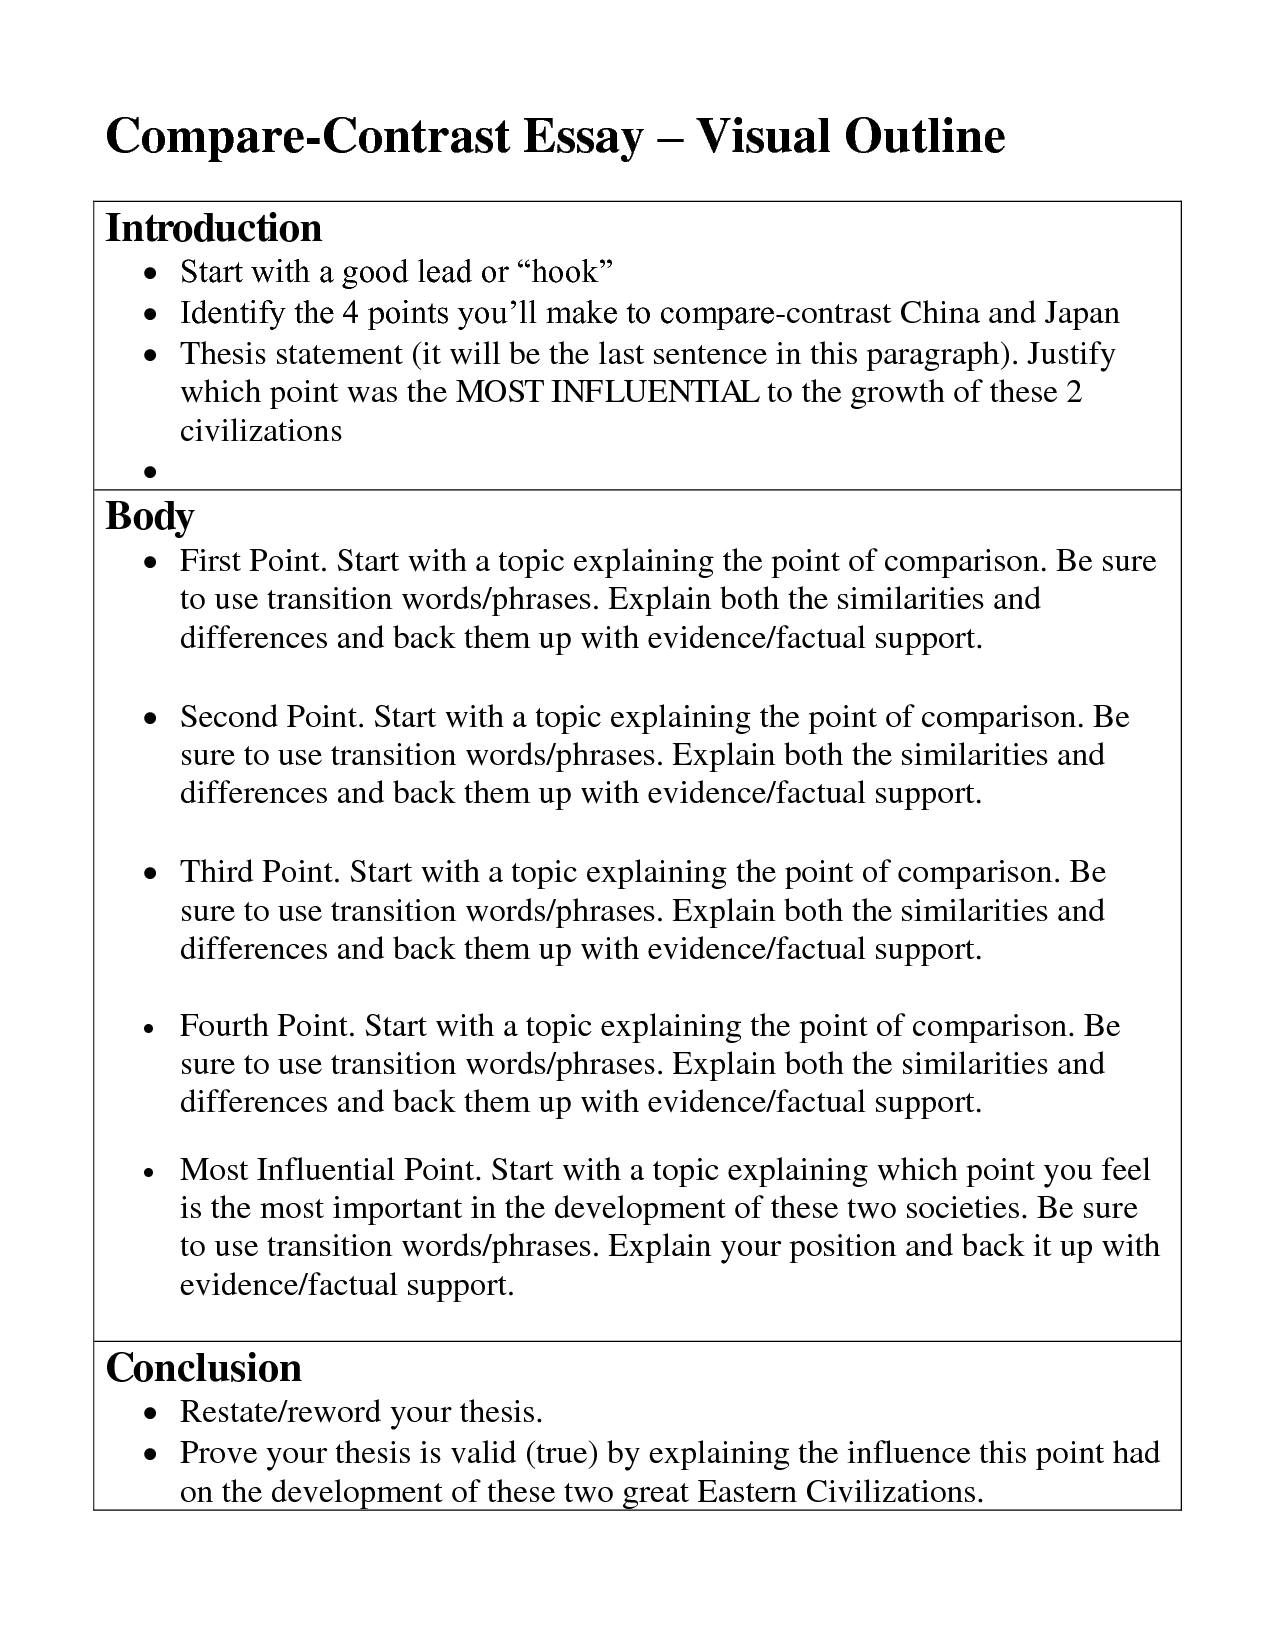 008 How To Write Researchs Best Research Papers A Paper - Pdf (2015) Conclusion An Introduction And Full